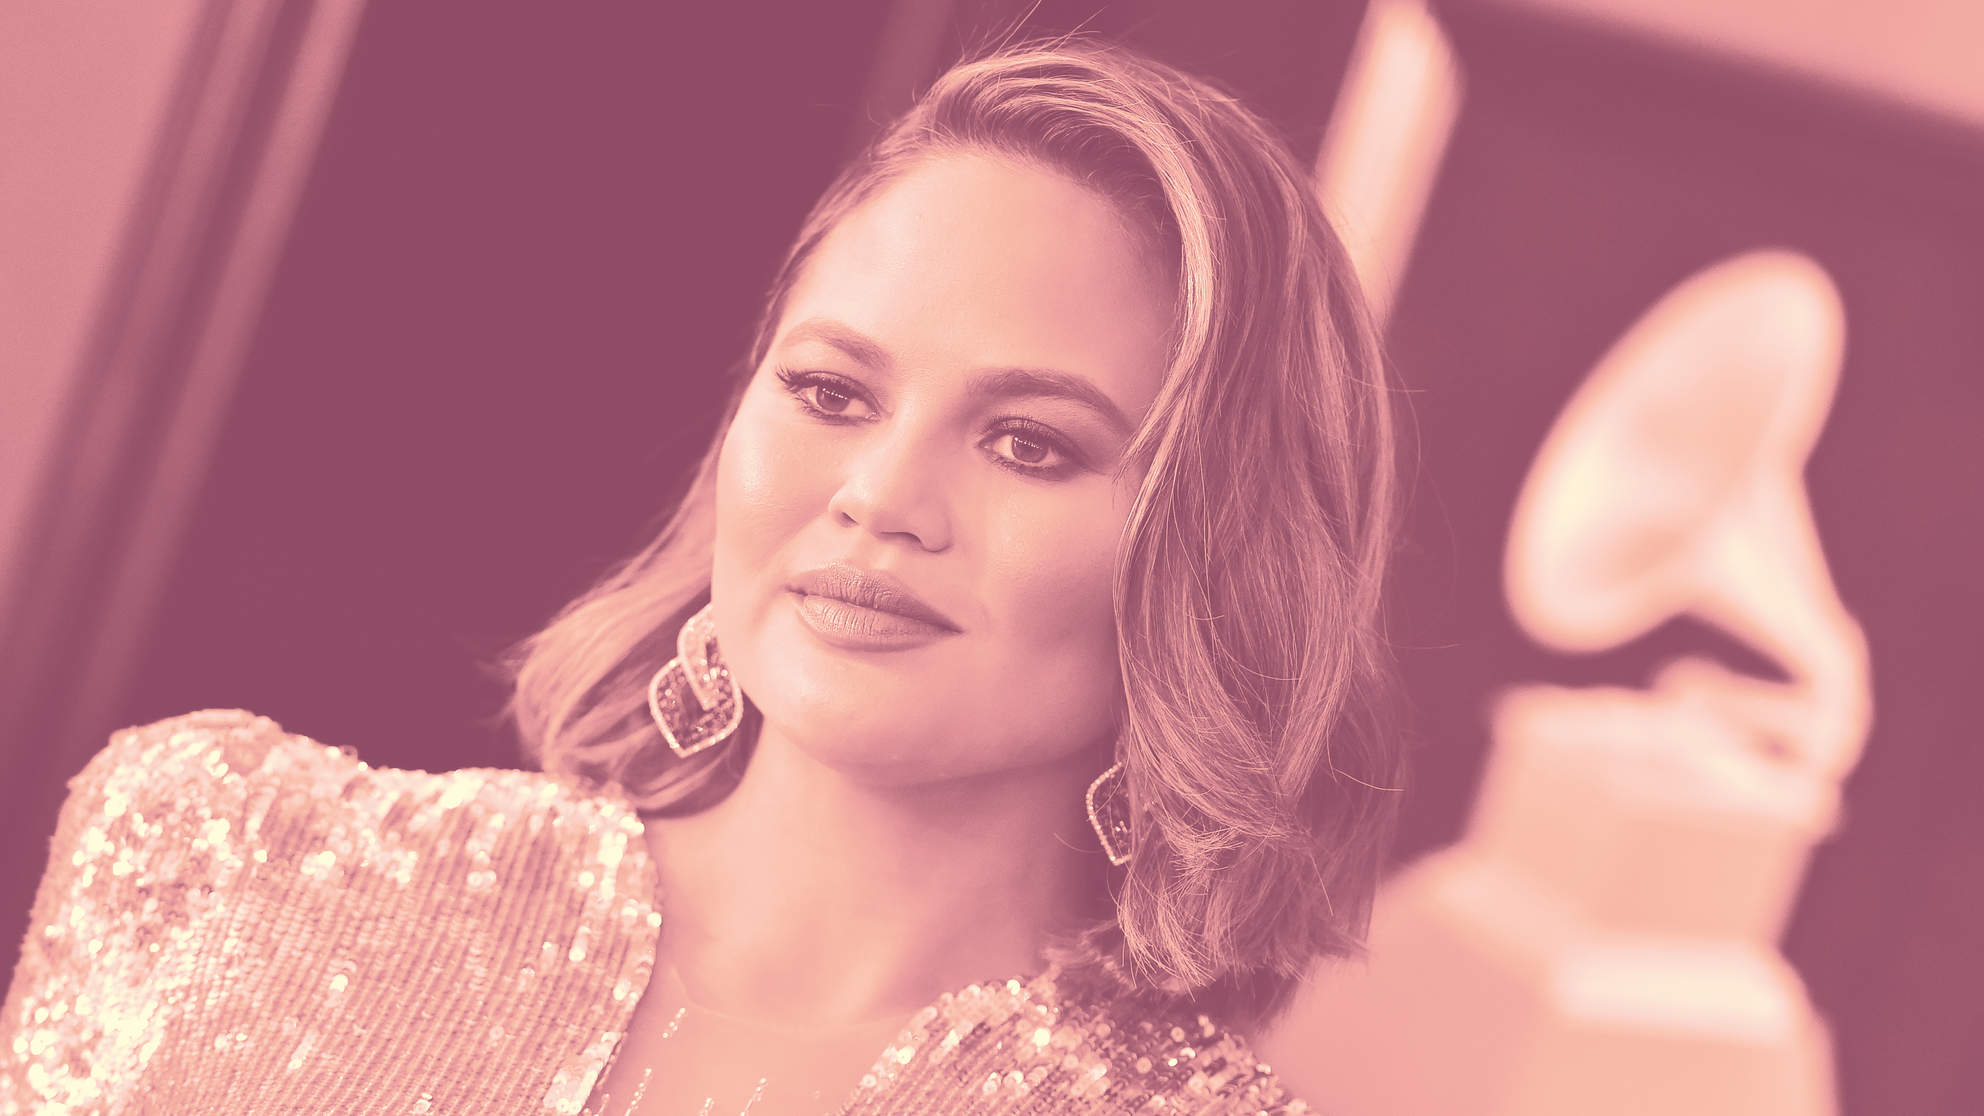 This Tinted Lip Balm Gives Chrissy Teigen Her Natural Glowy Pout